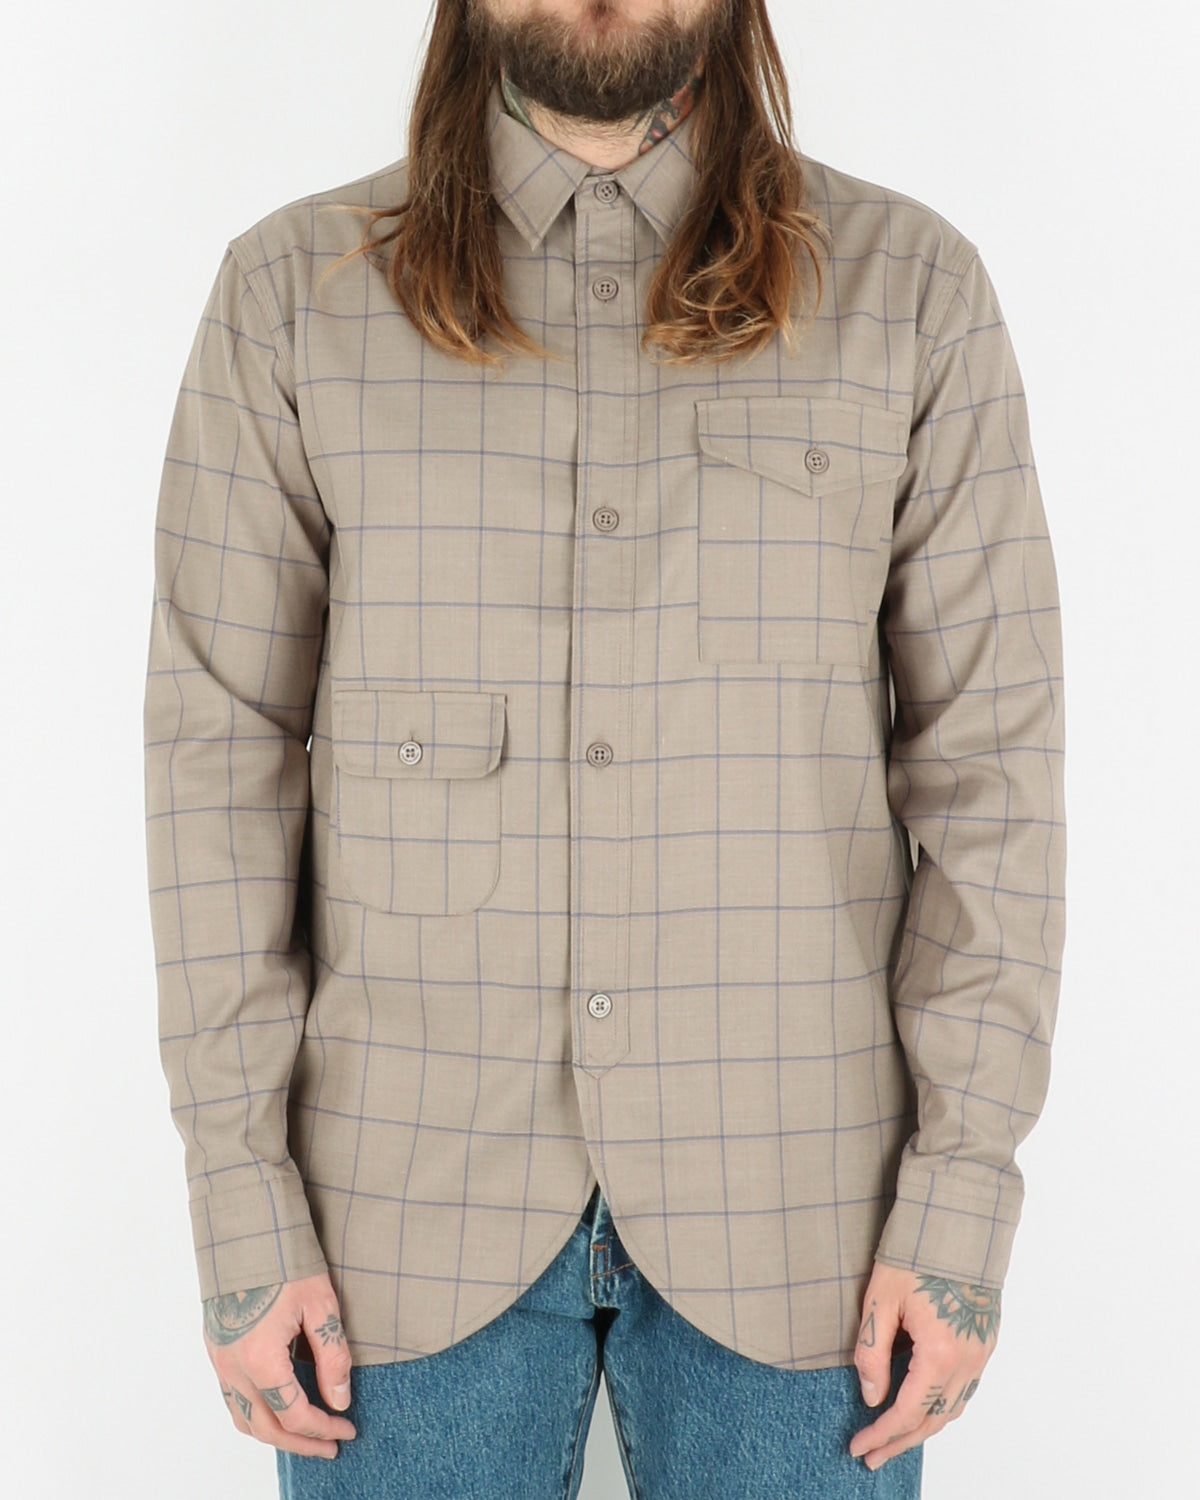 han kjobenhavn_army shirt_sand windowpane_1_3